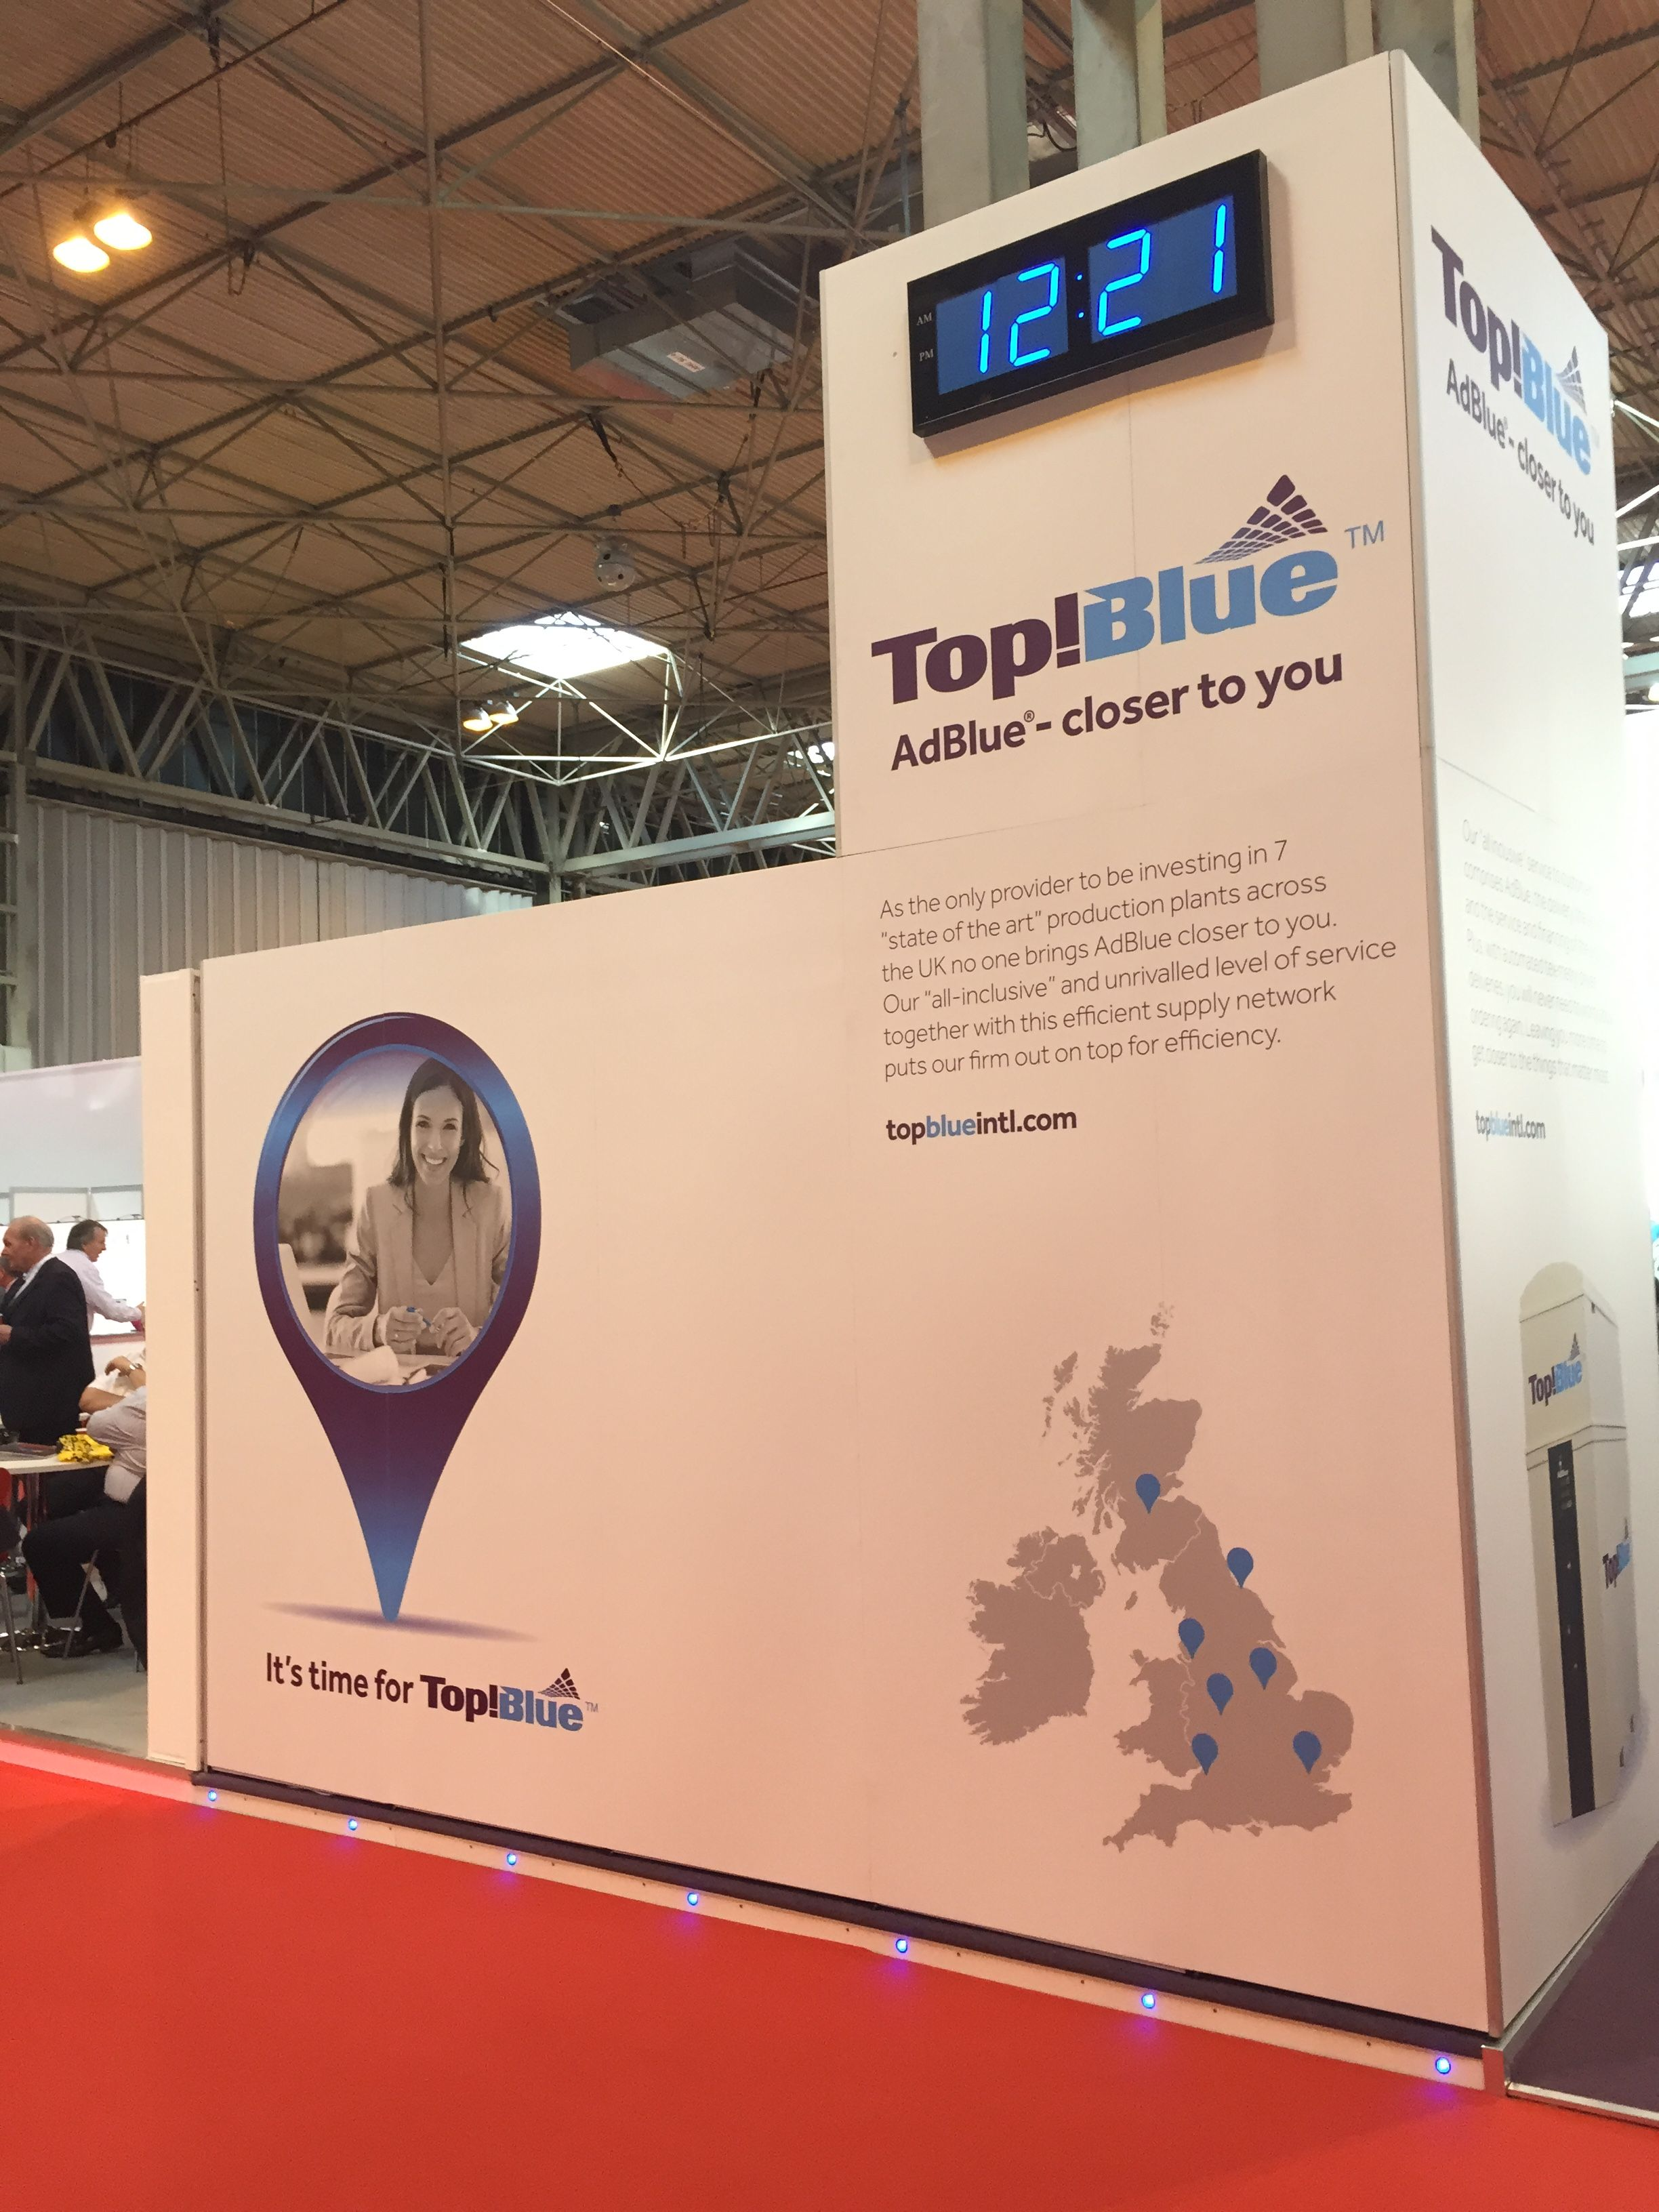 Exhibition Stand Builders Uk : Bespoke stands exhibition stands england uk